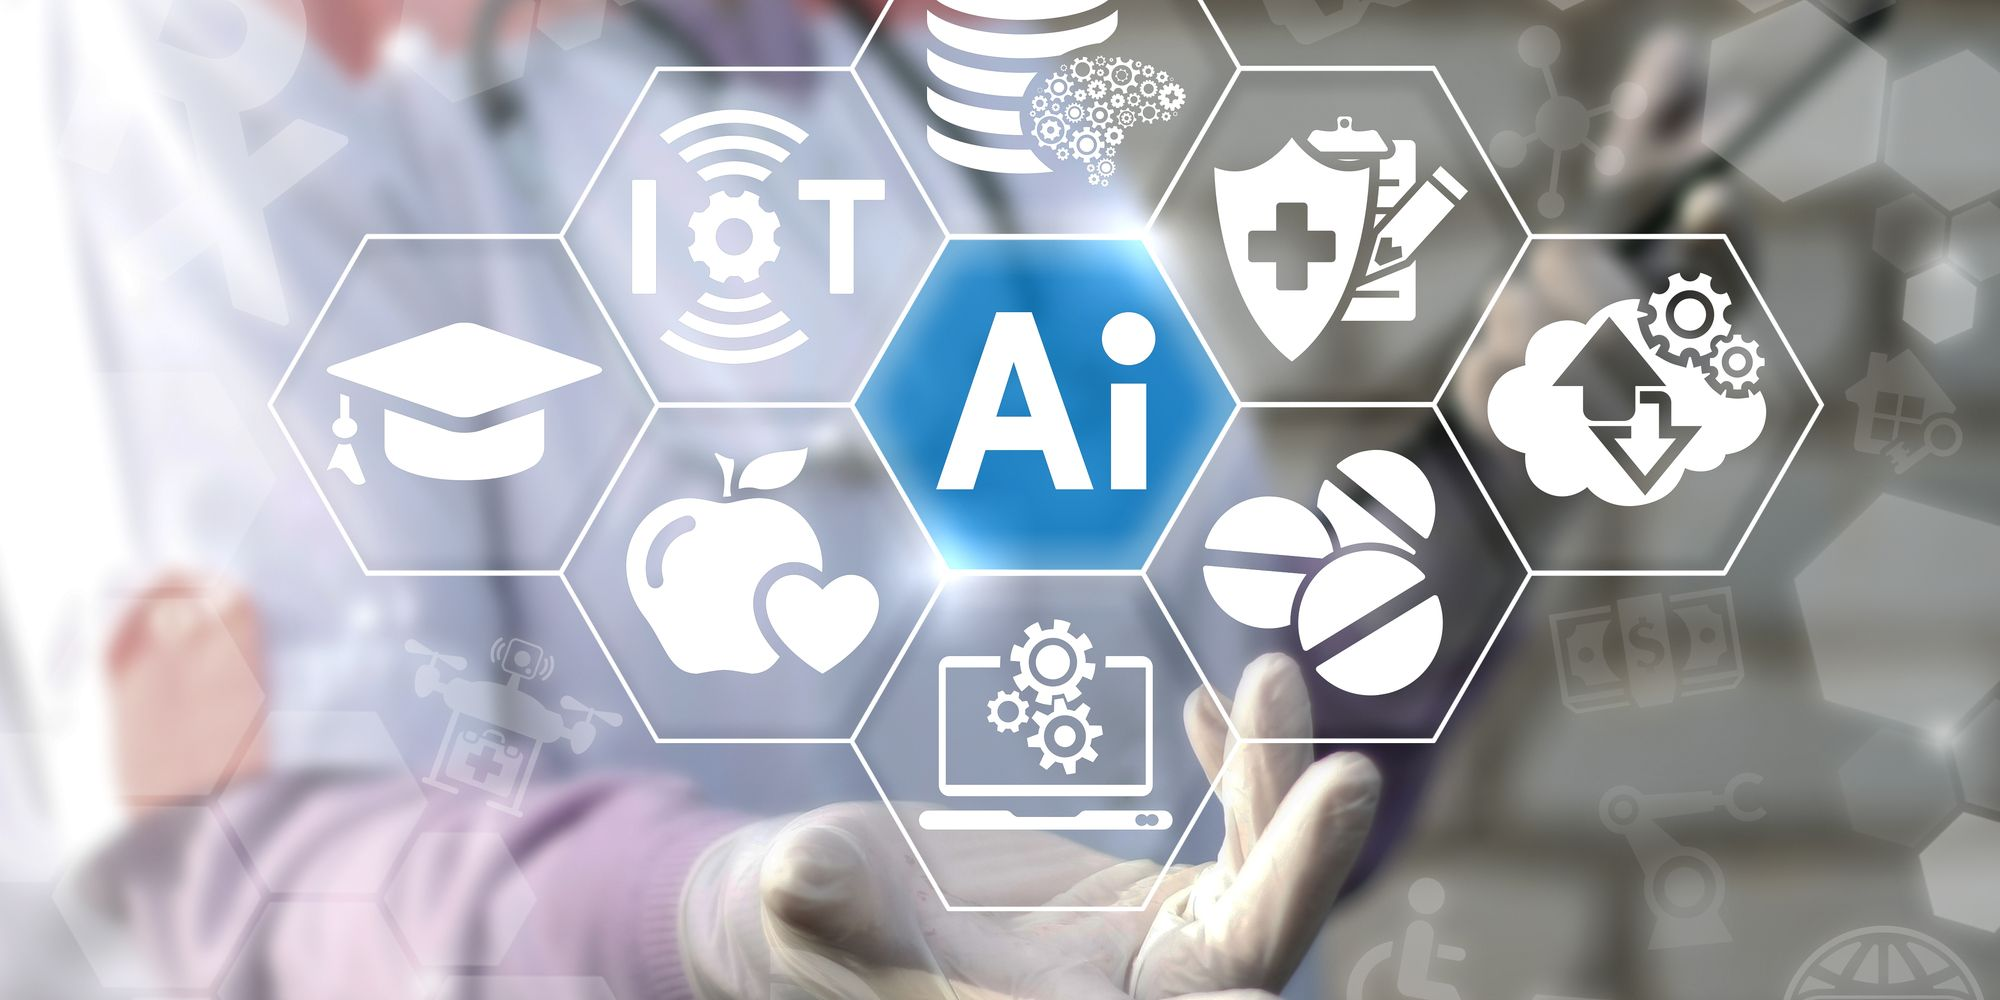 Top 8 Industrial Artificial Intelligence Or AI Applications